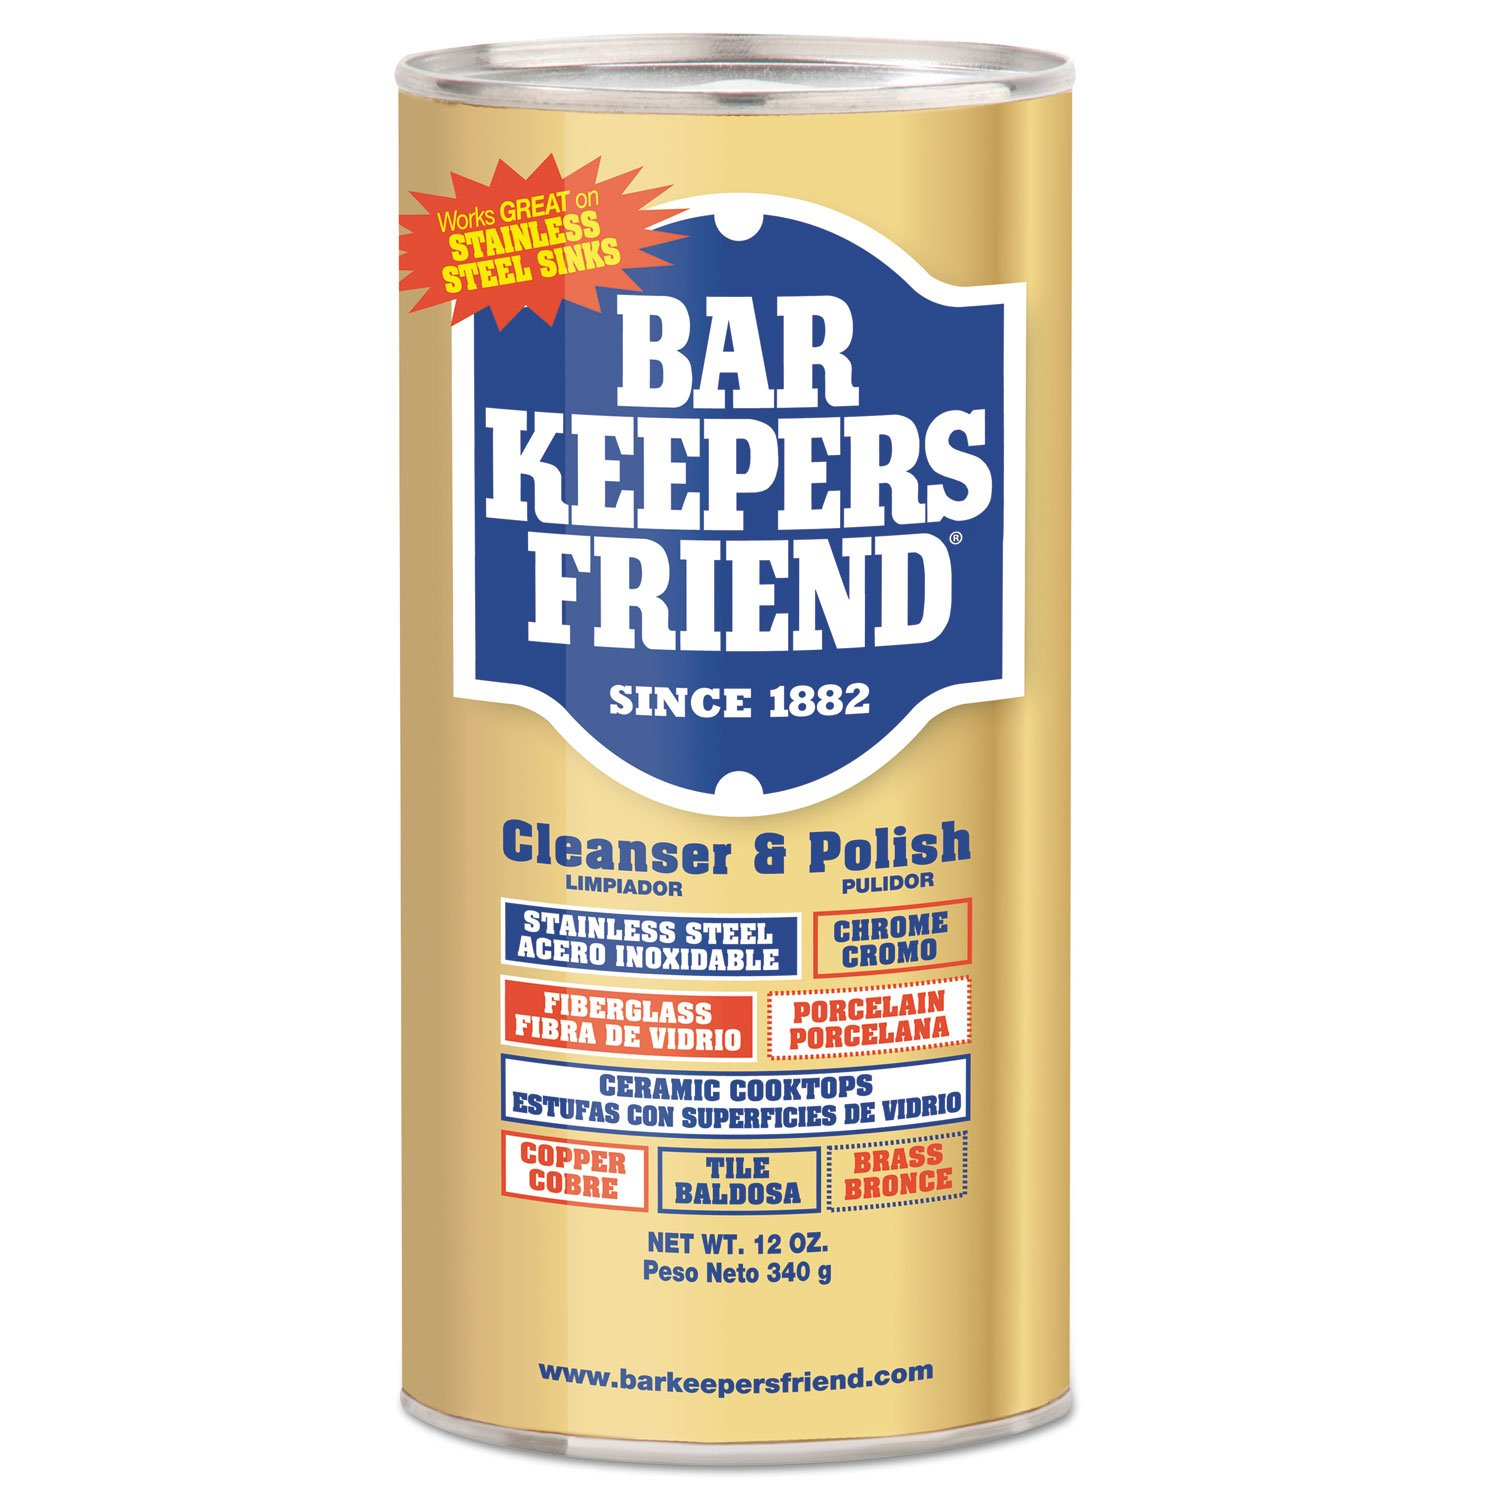 Amazon.com : Bar Keepers Friend Powdered Cleanser and Polish, 12 Oz Can, 12/Carton : Office Products